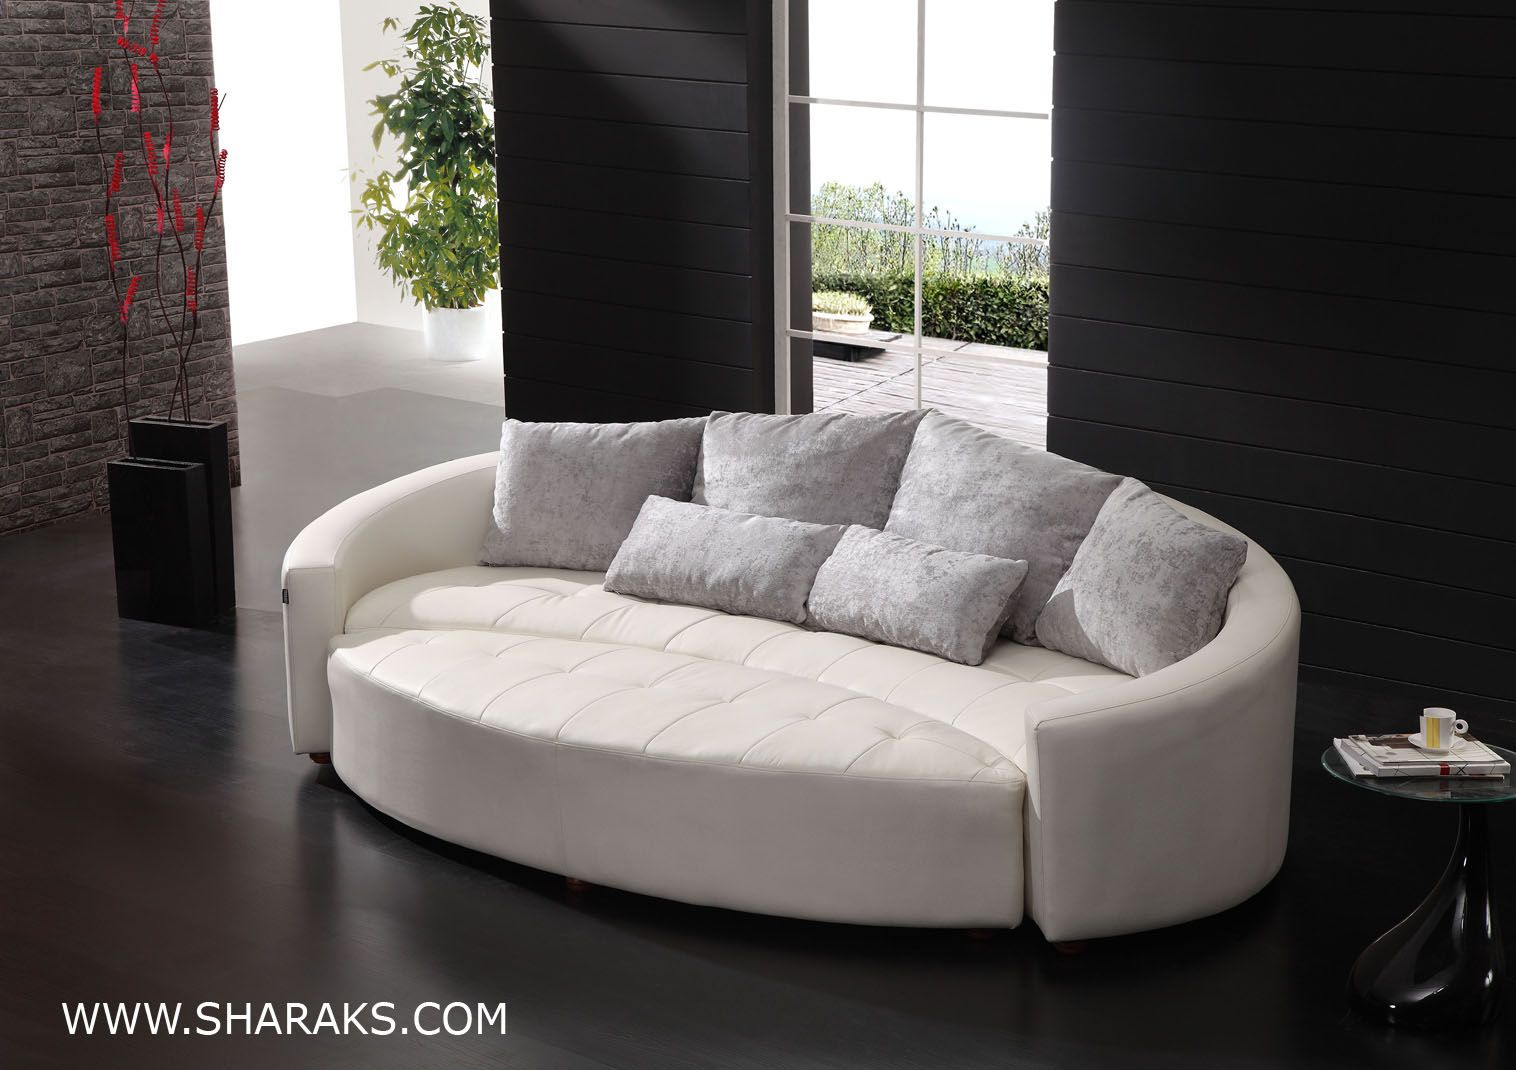 modern round sofa bed broyhill sectional stylish 1000 images about curved couch ideas on pinterest